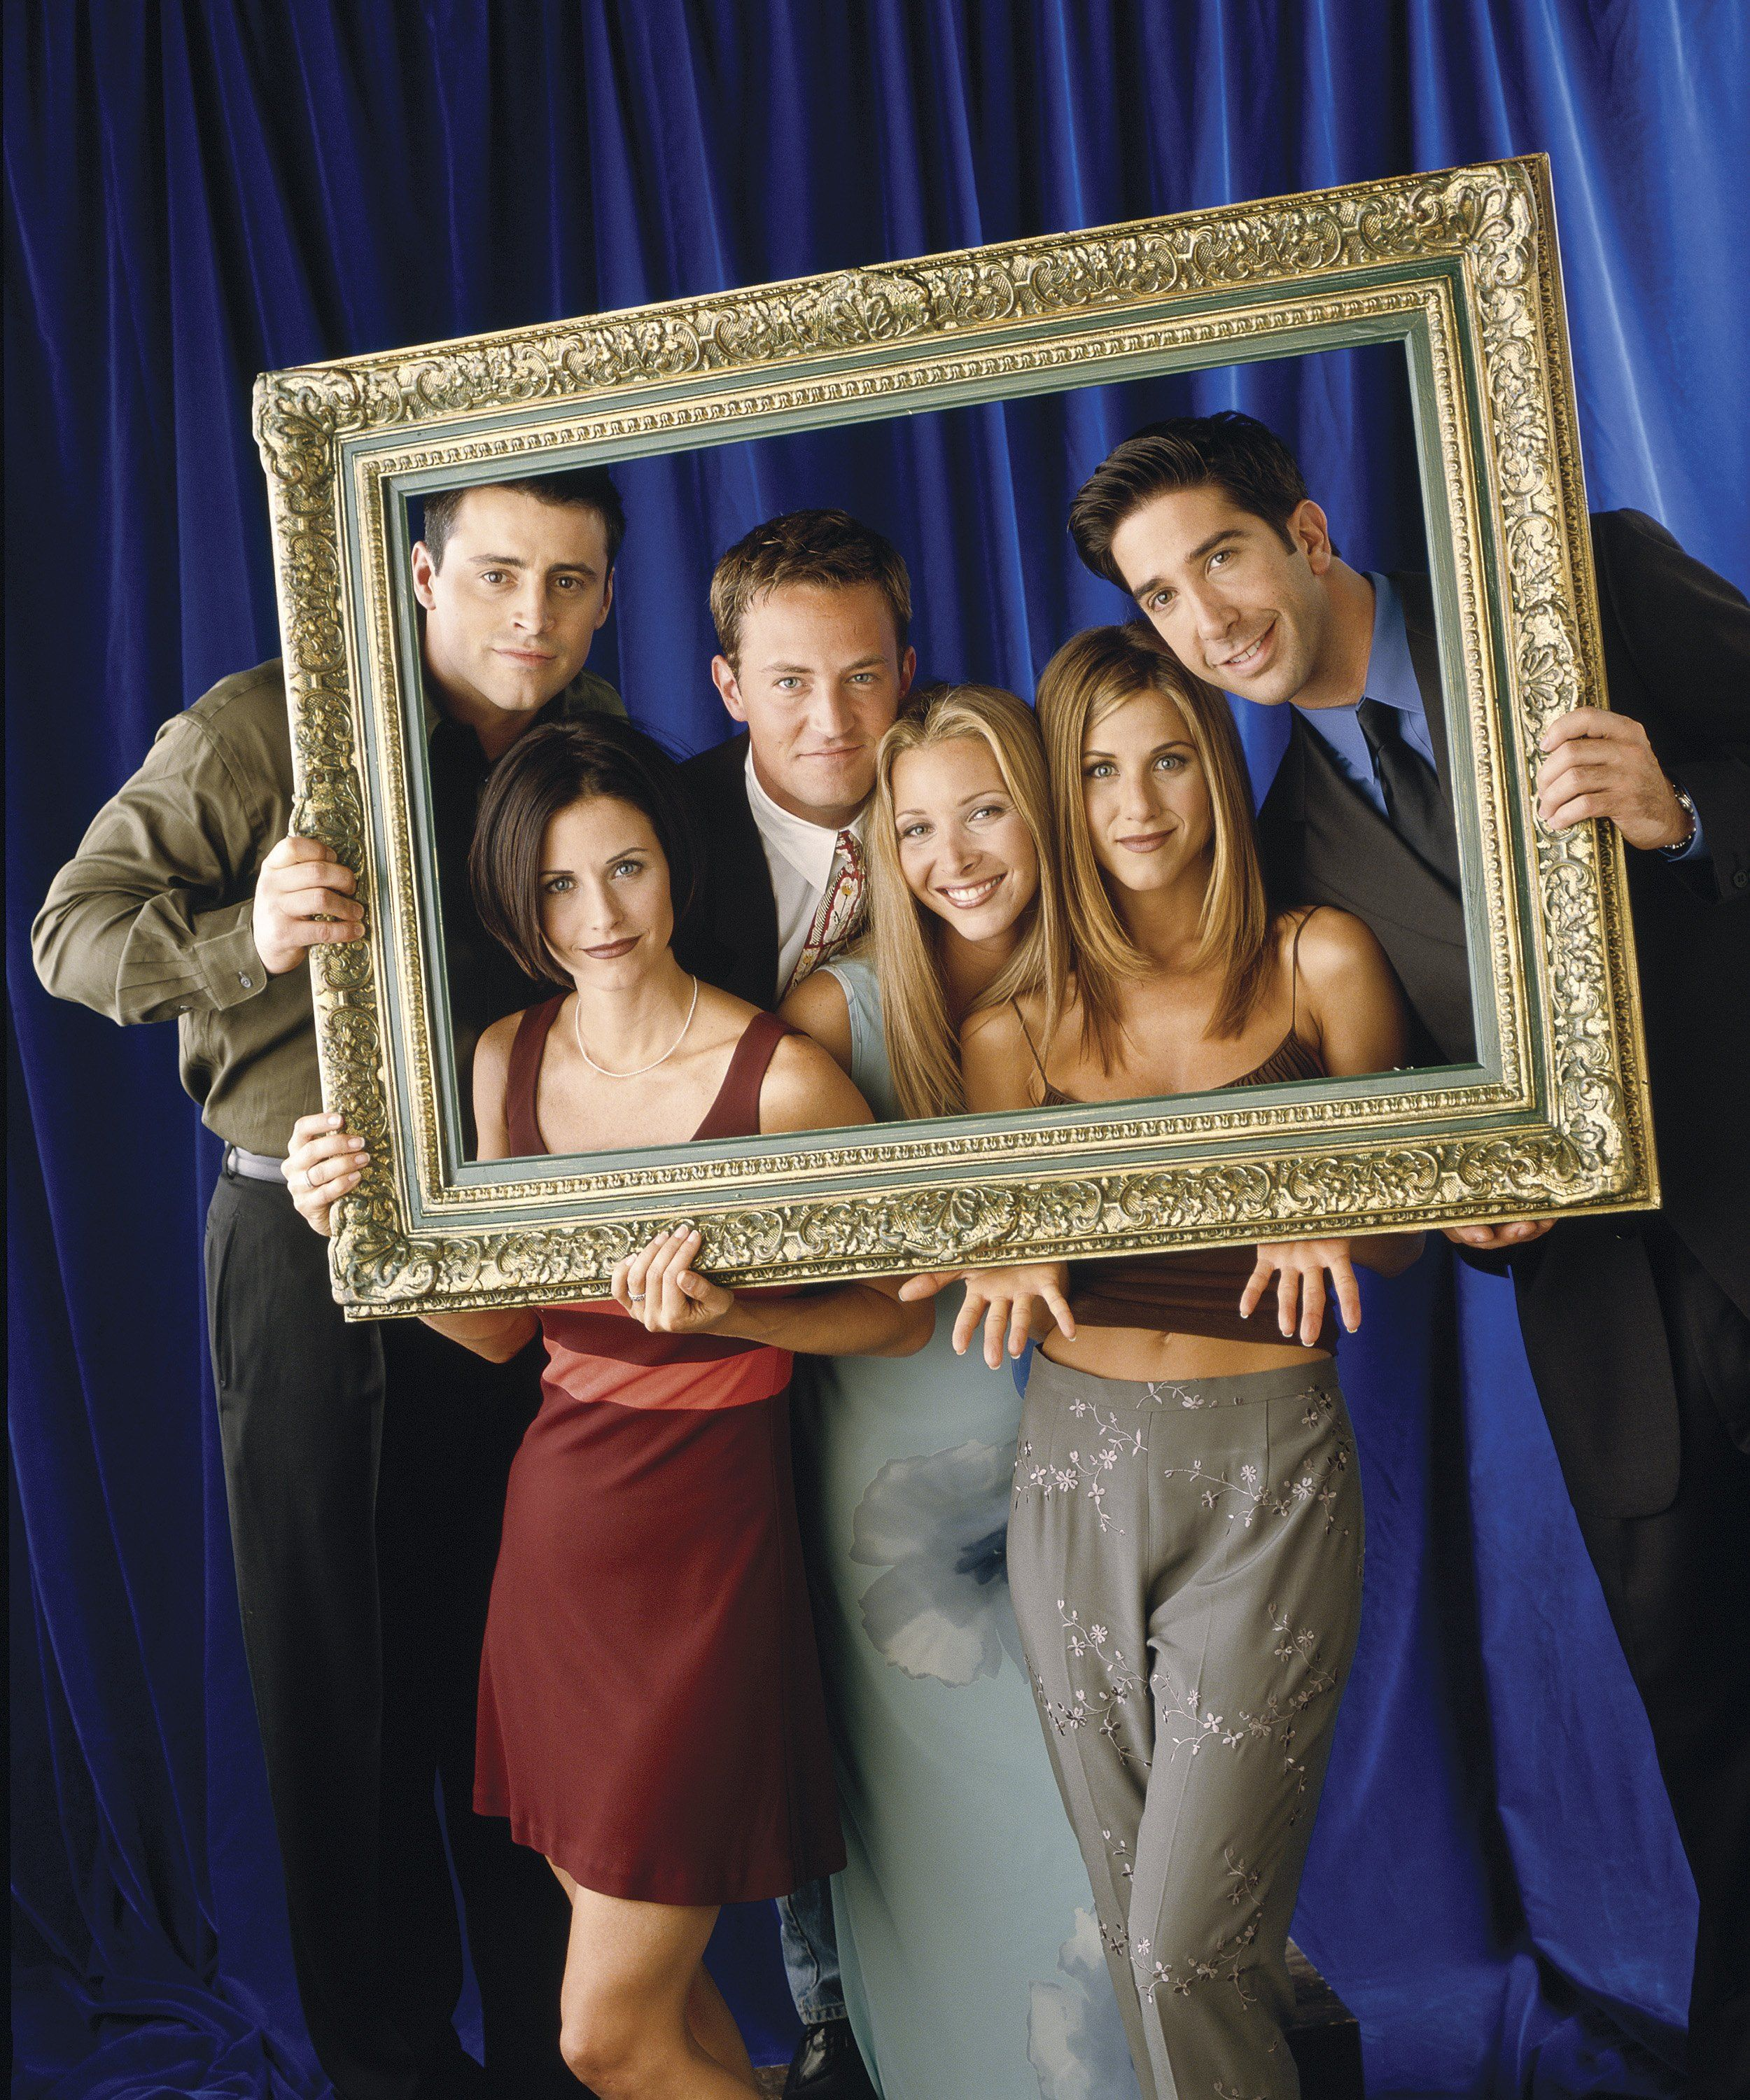 70 'Friends' Facts Every Superfan Should Know